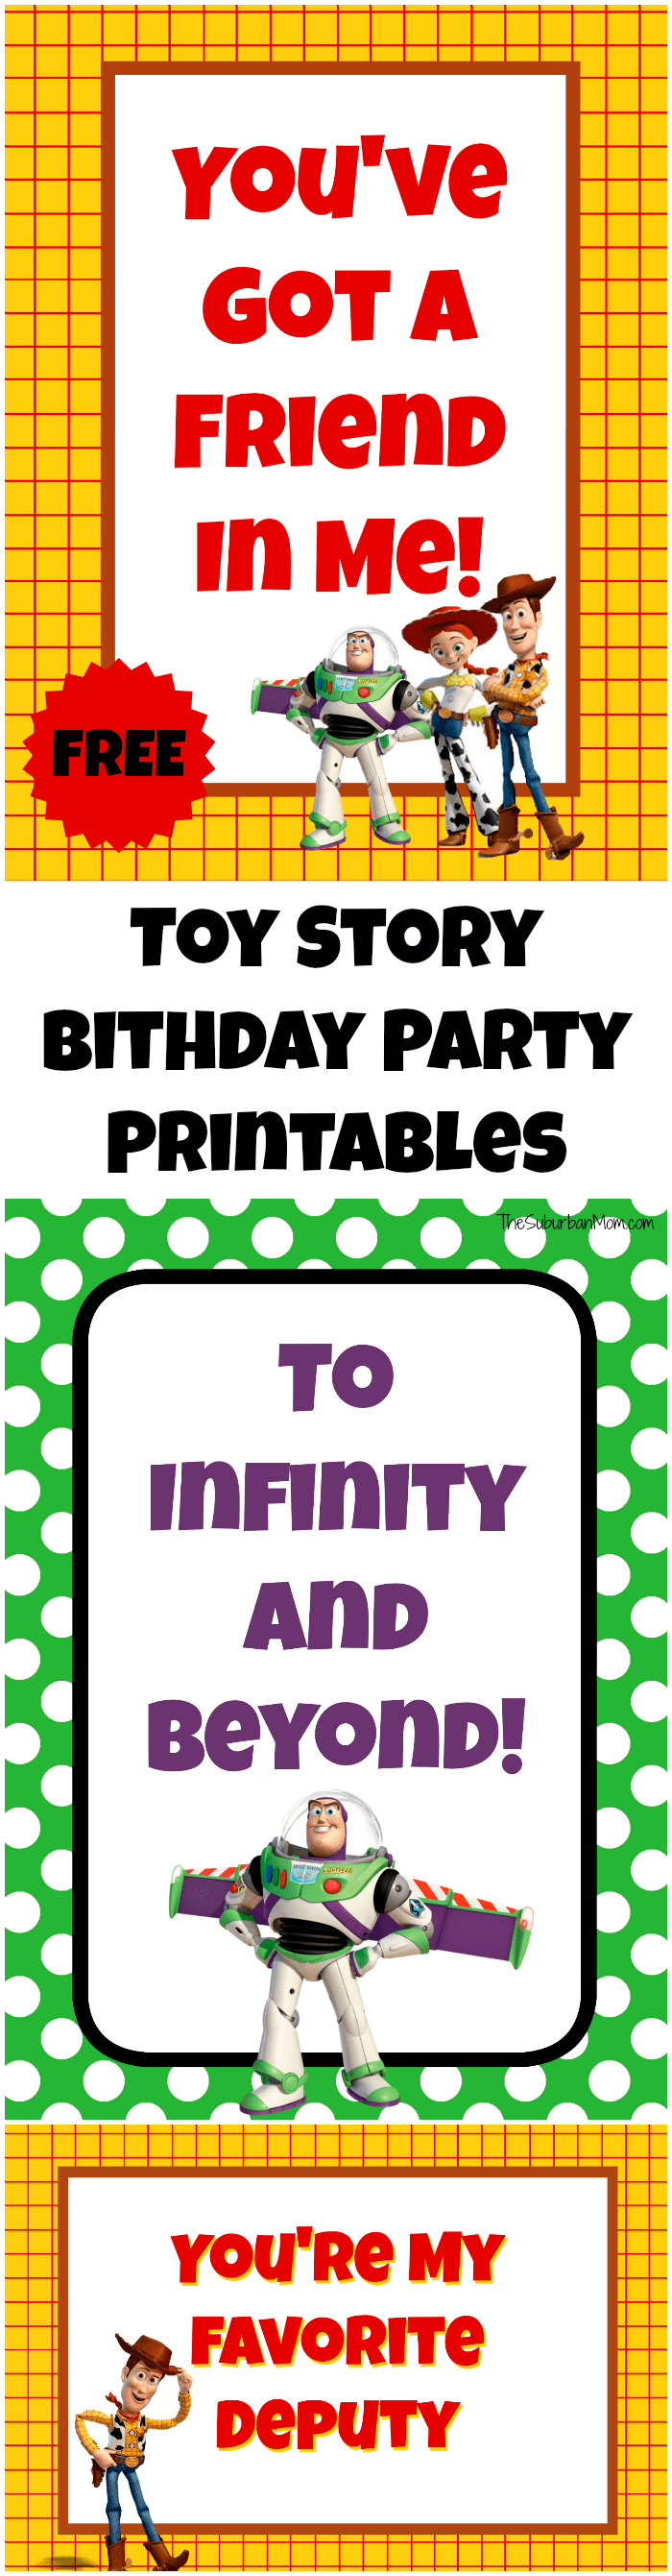 free toy story party printables the suburban mom